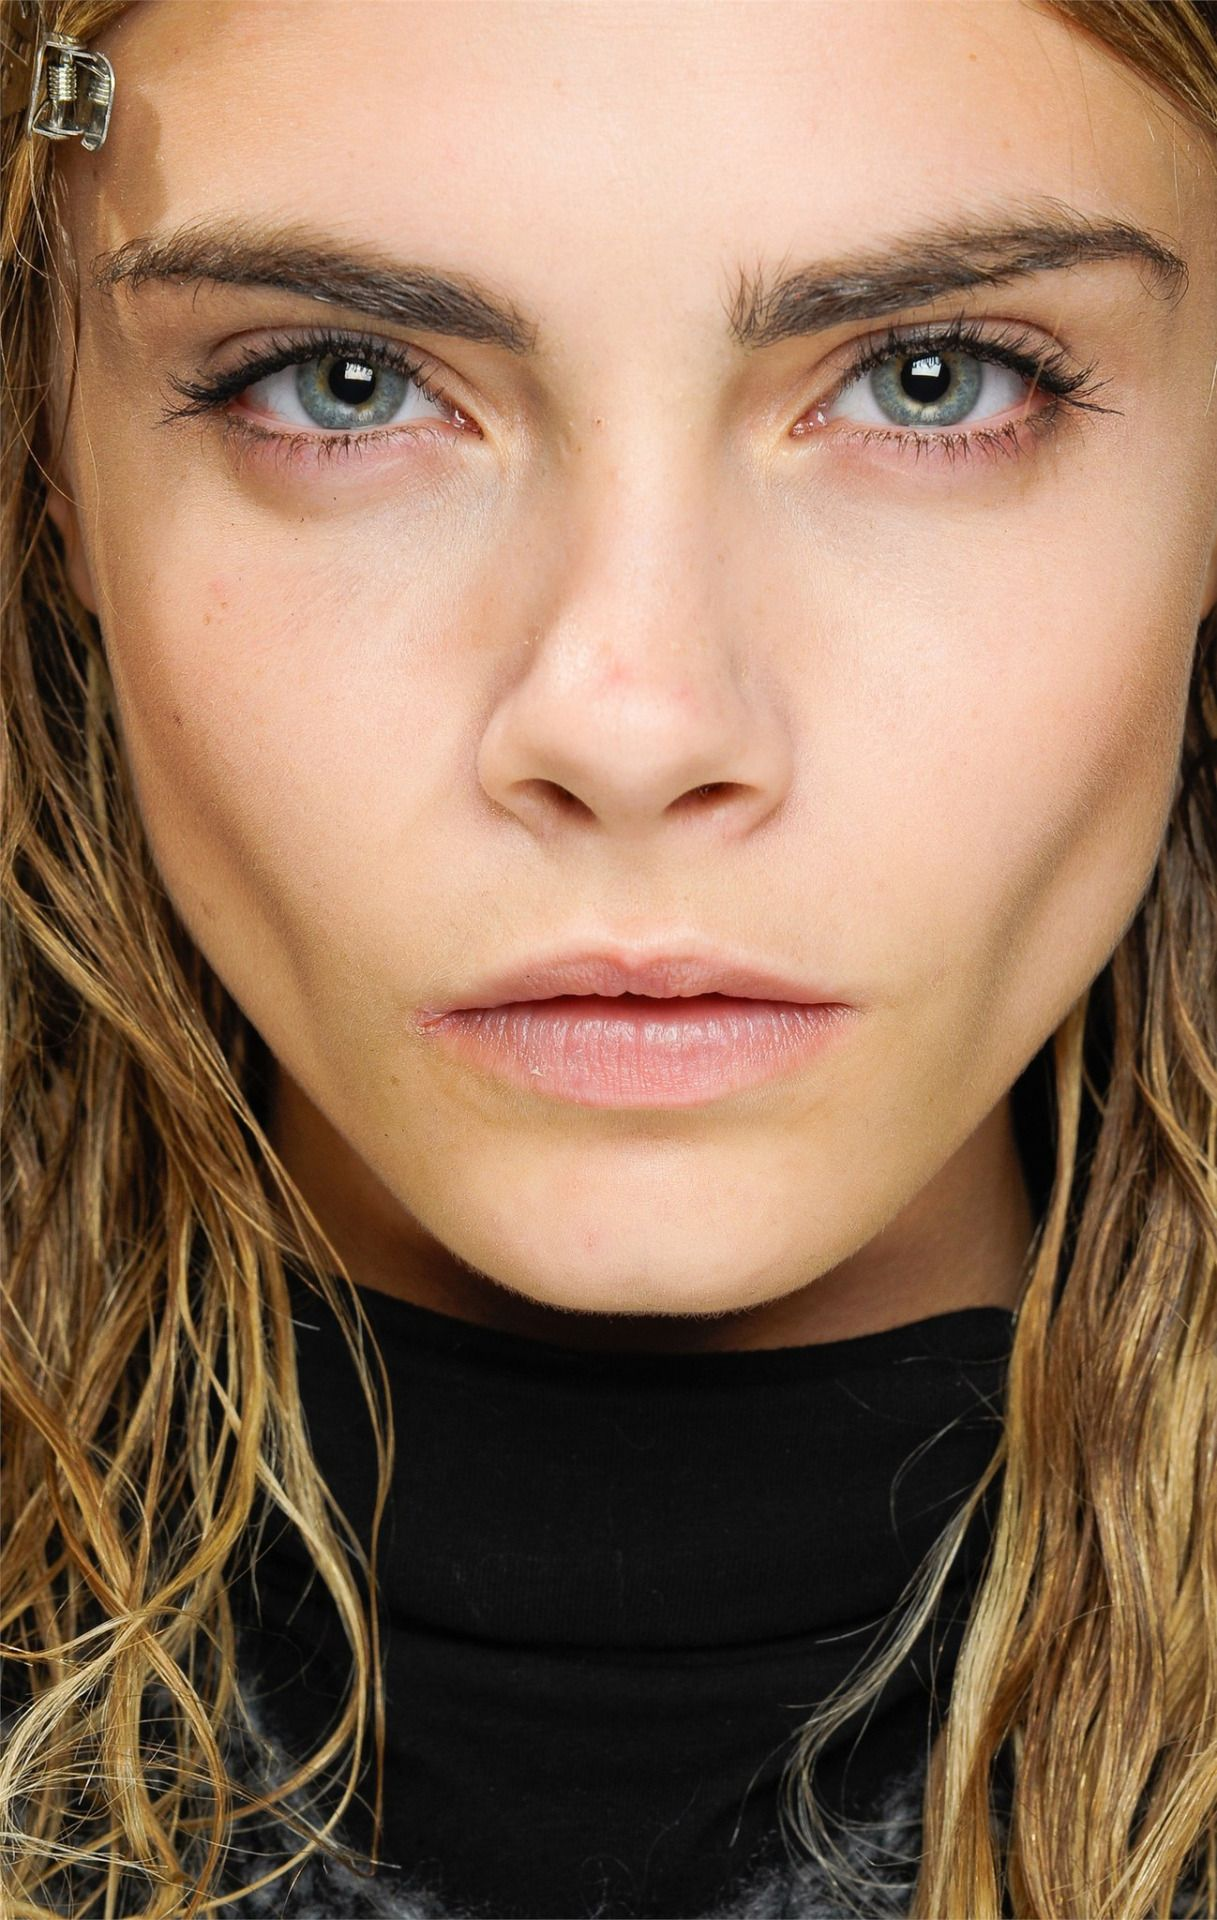 The lovely Cara. (With images) Cara delevingne, Cara